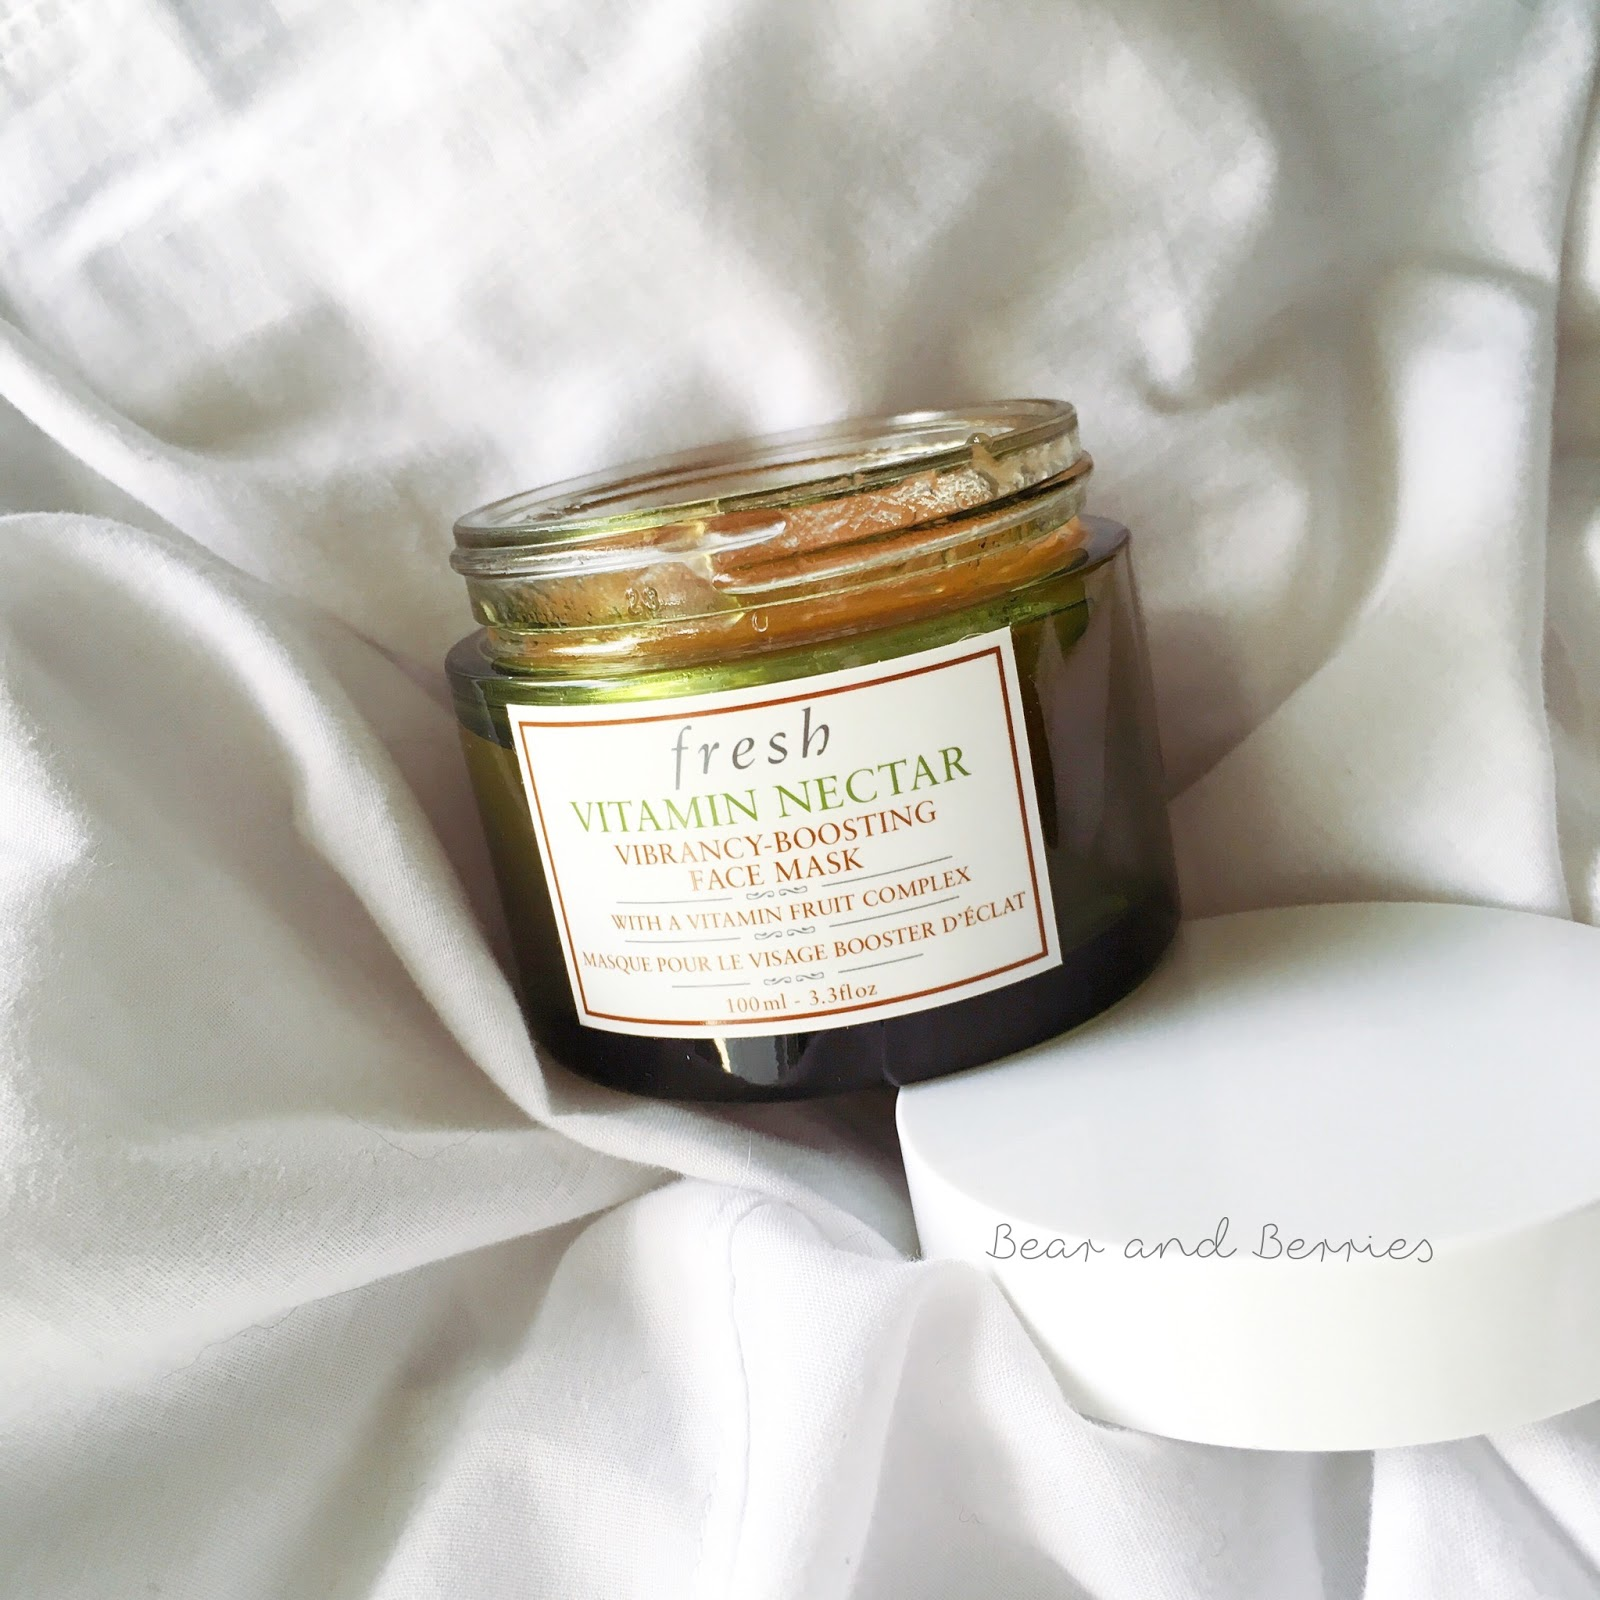 Fresh Vitamin Nectar Vibrancy Boosting Face Mask Review